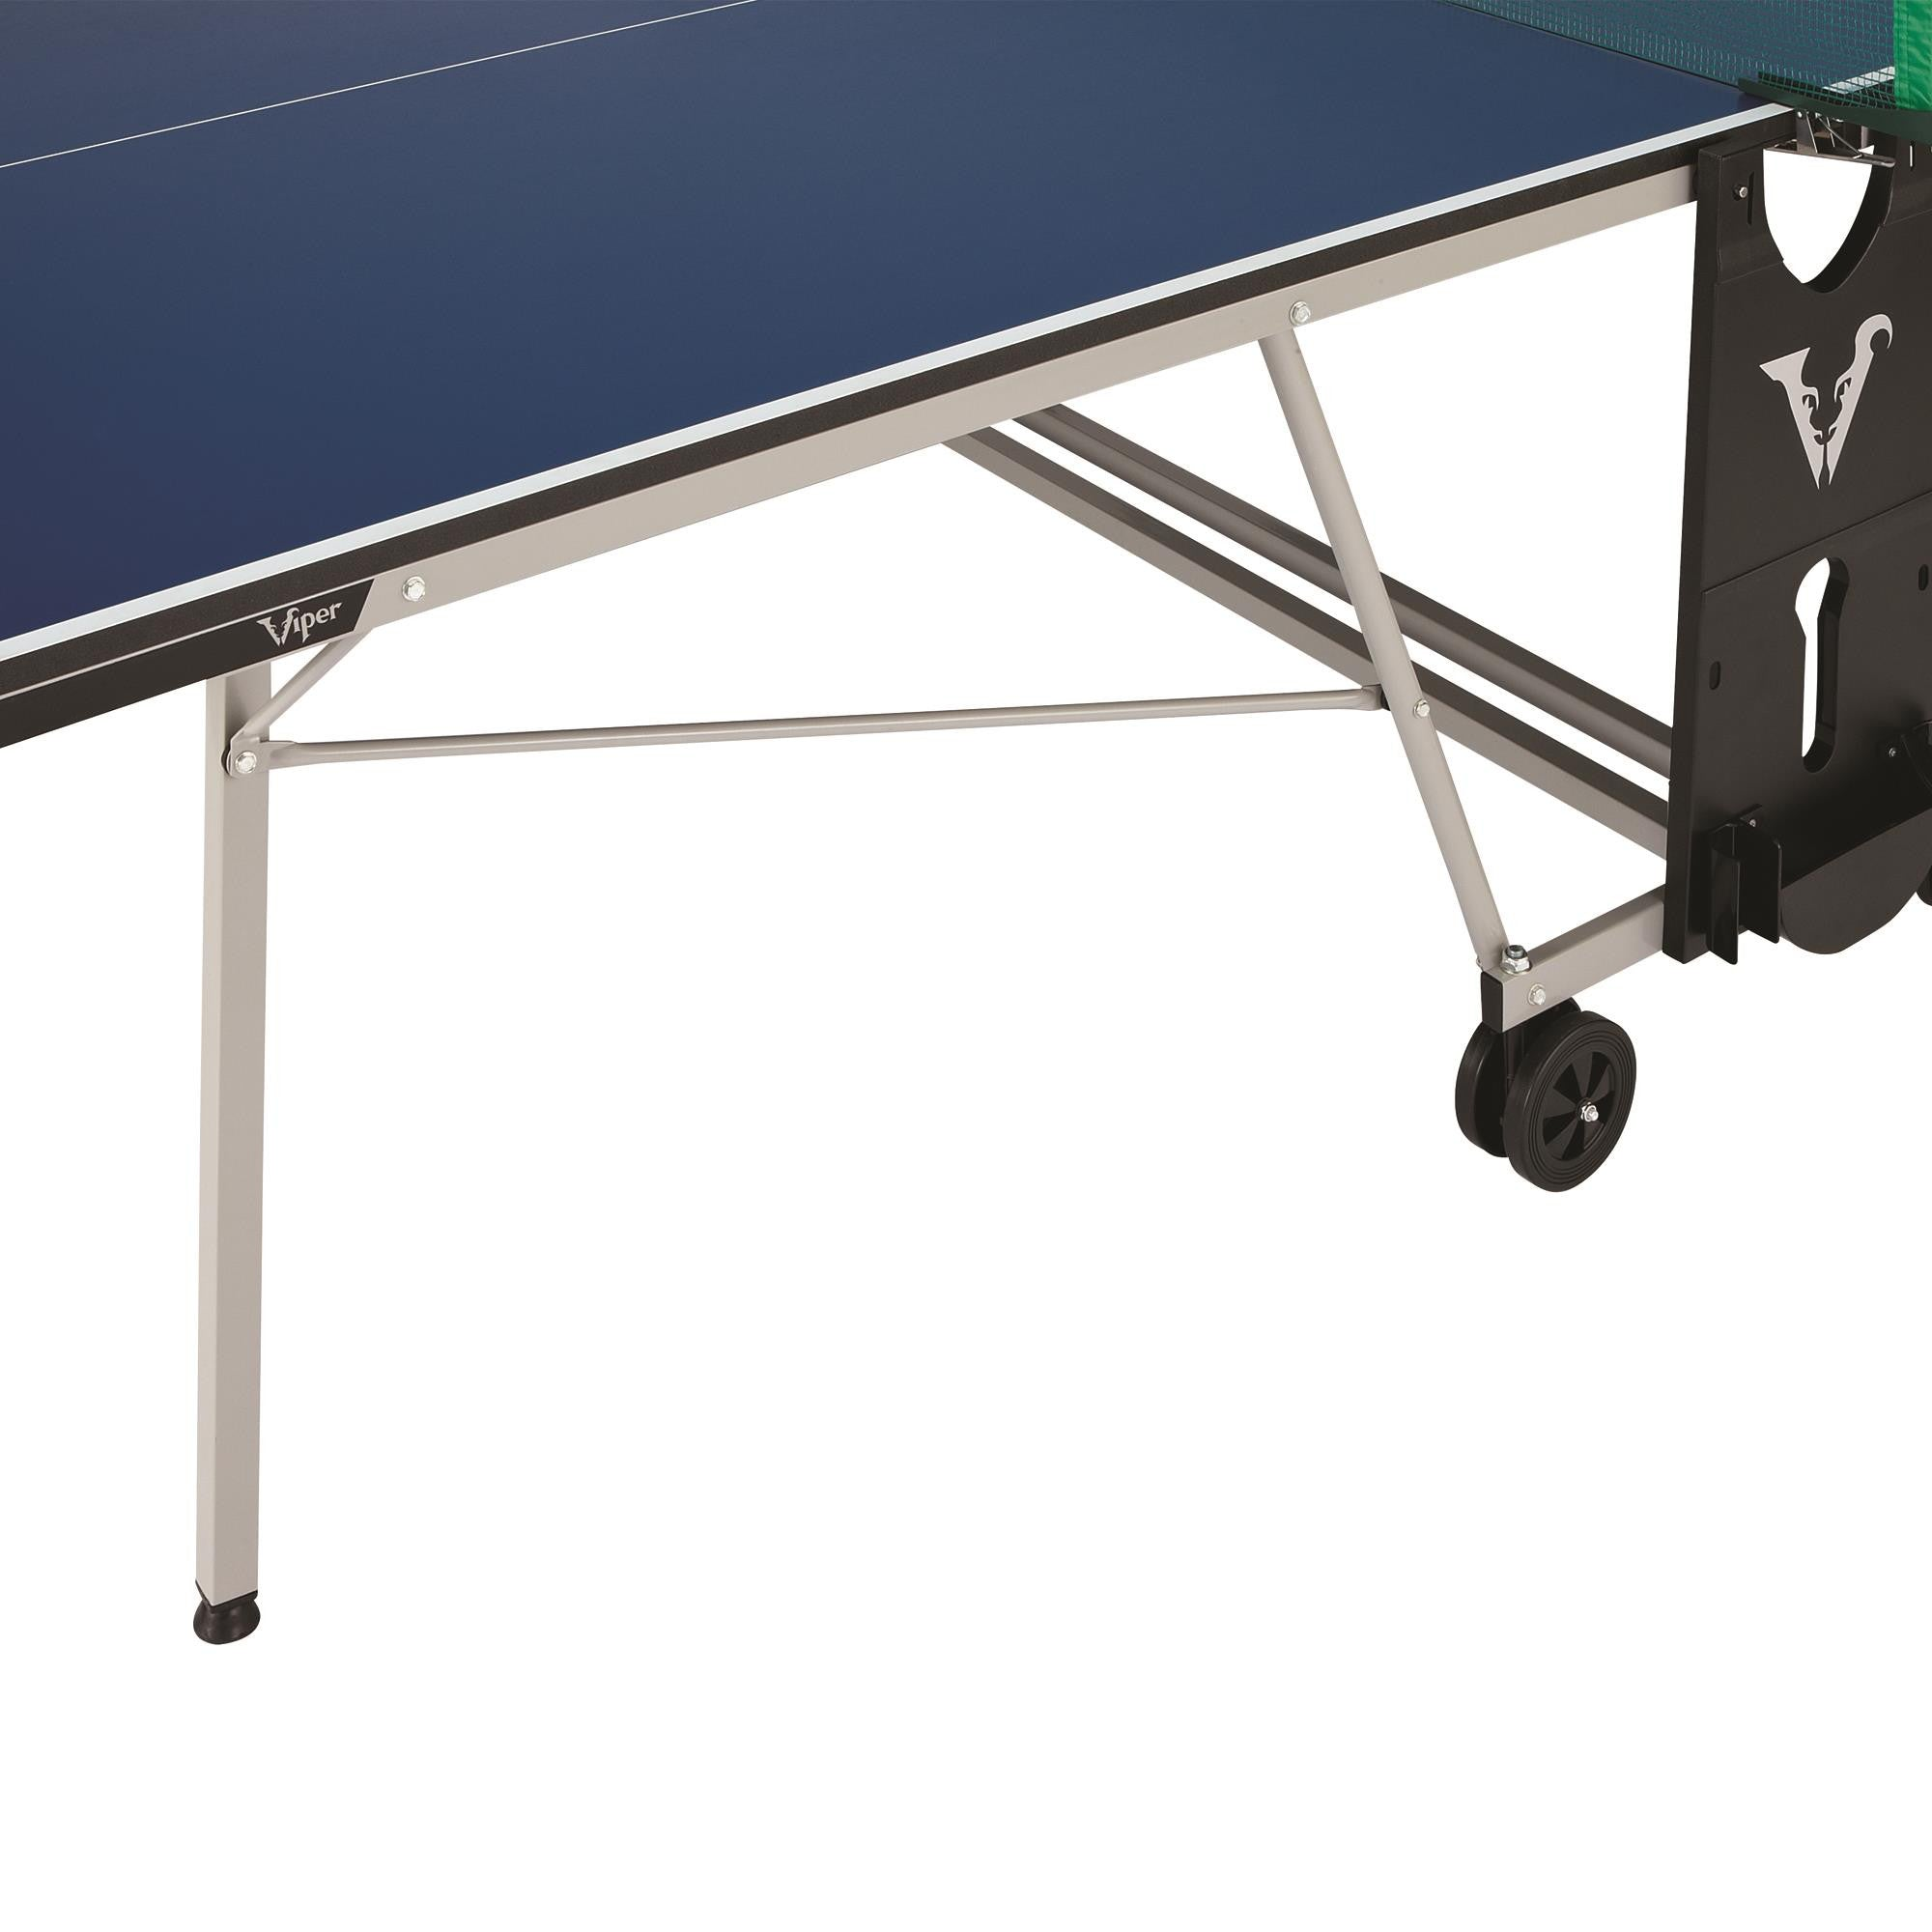 ... Viper Davenport Indoor Table Tennis Table 70 0115  ...